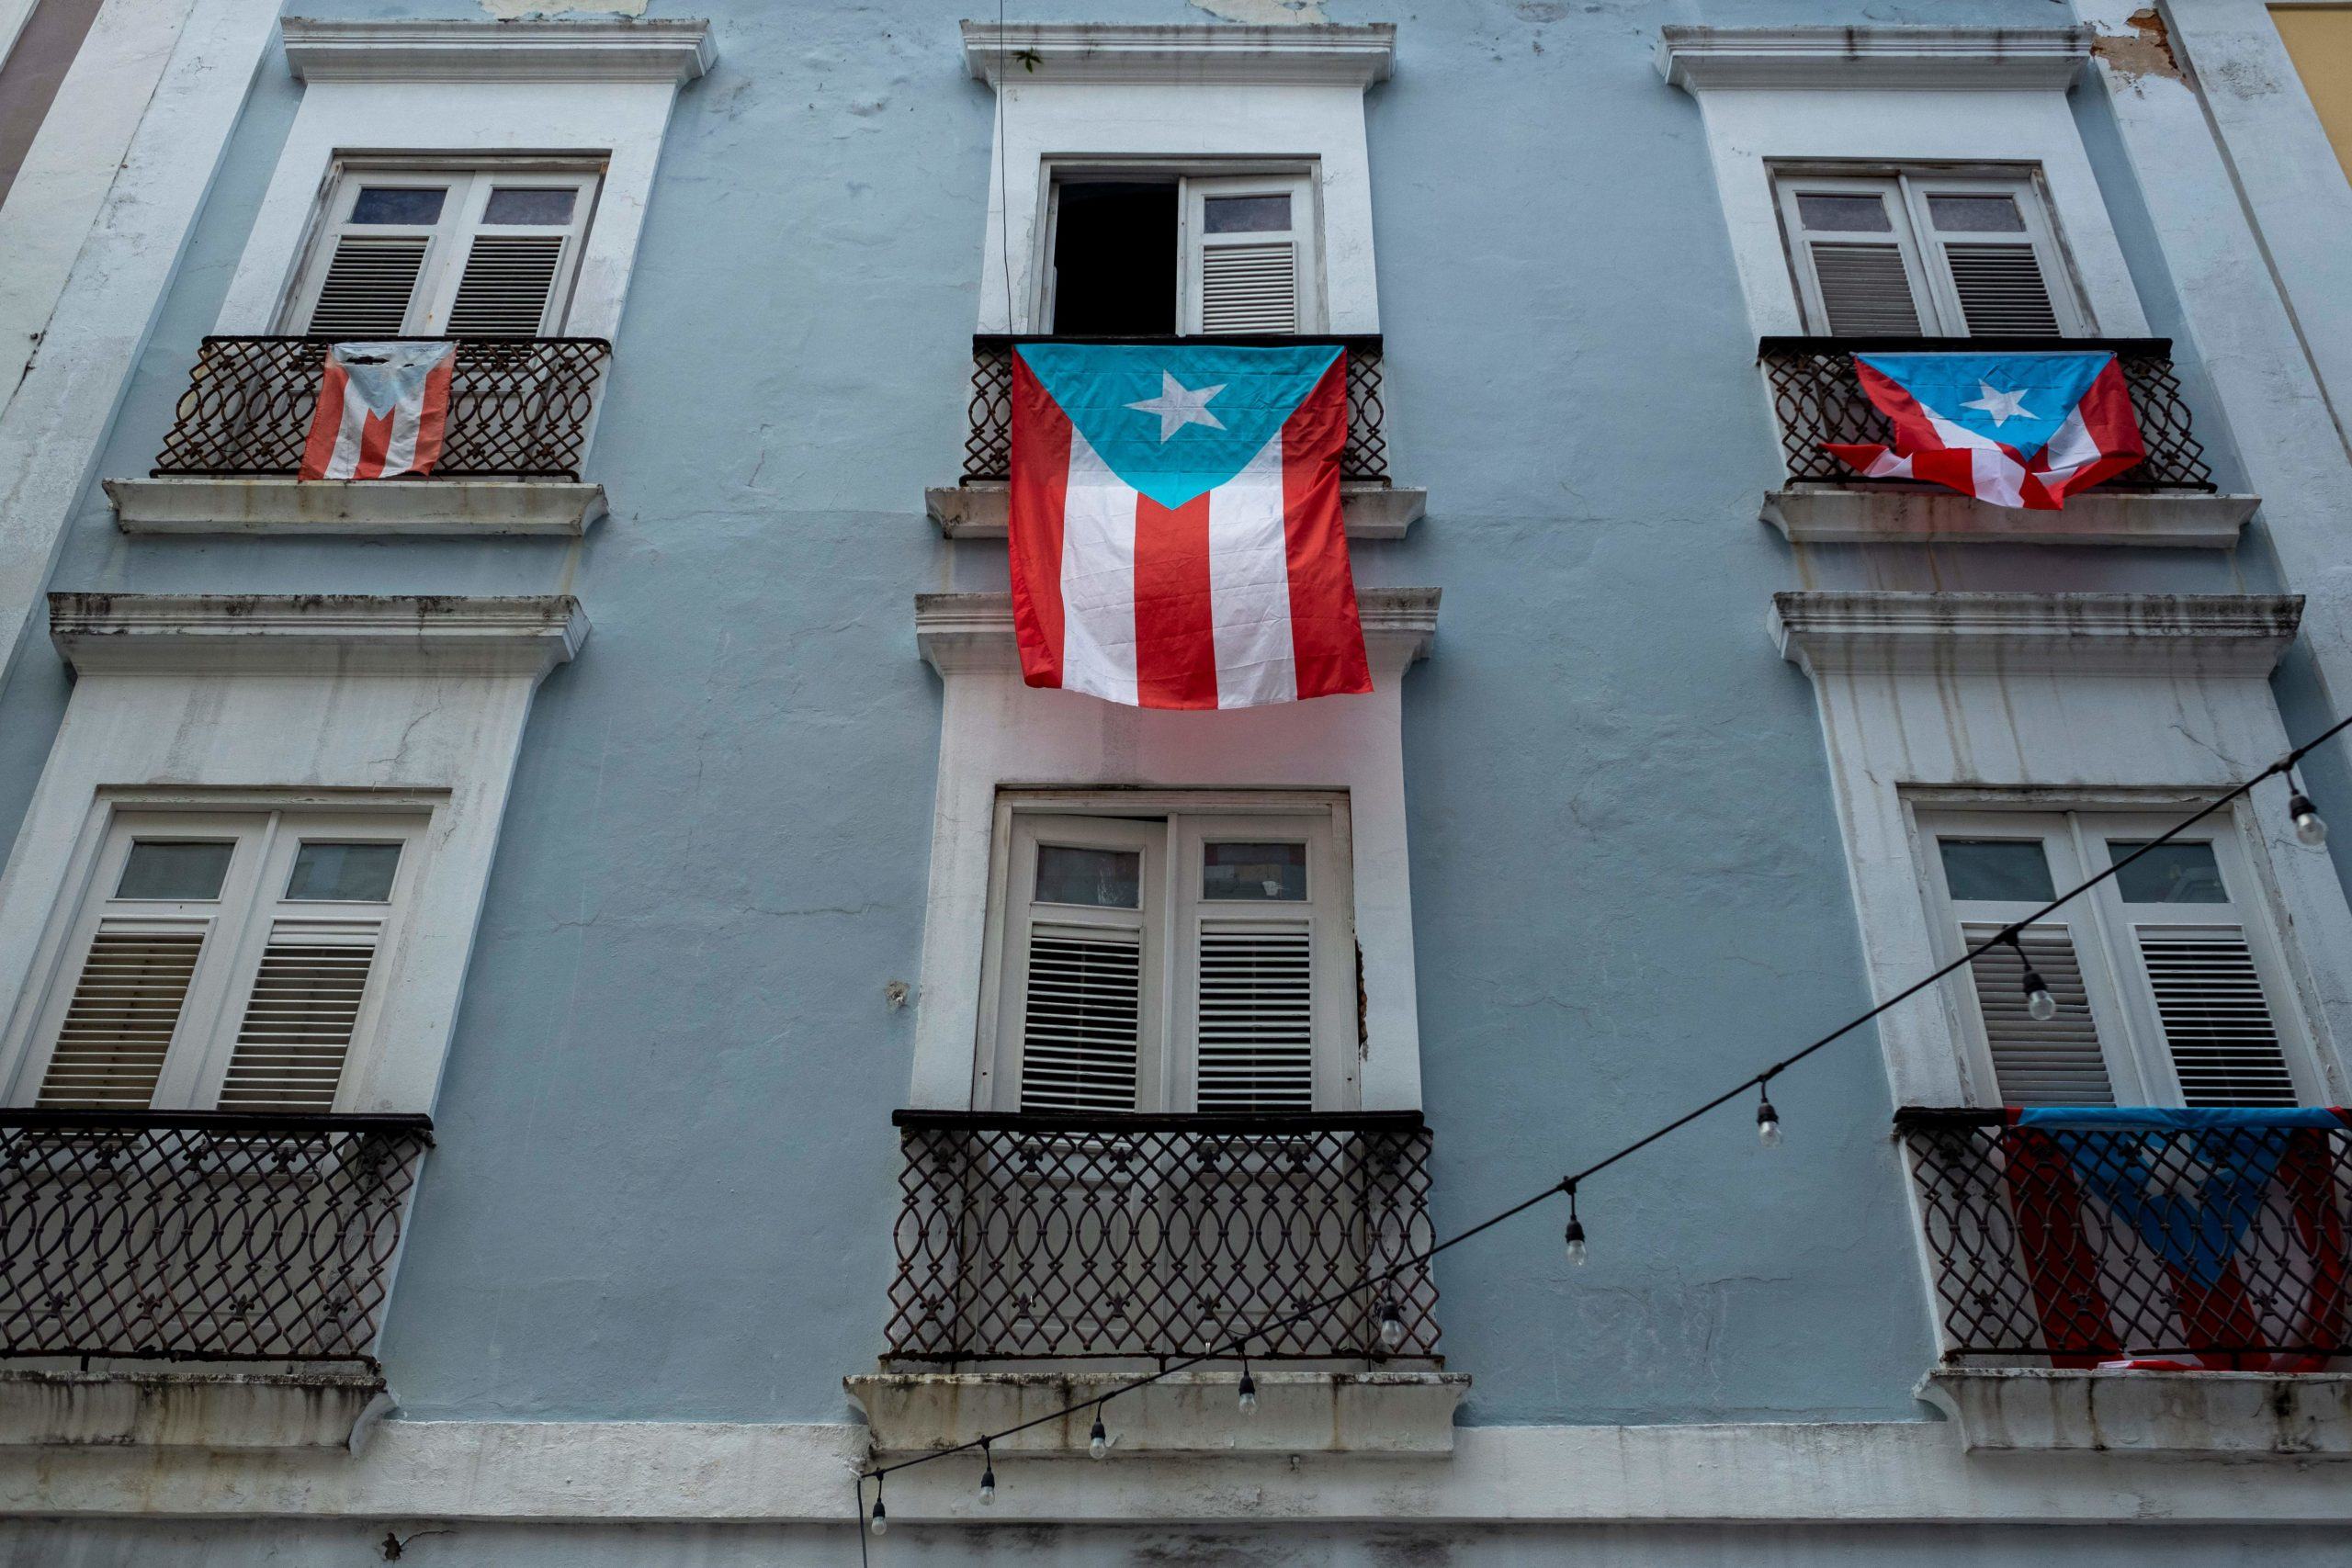 Puerto Rican National flags hang from balconies in Old San Juan, Puerto Rico on April 7, 2020. (Ricardo Arduengo/AFP via Getty Images)